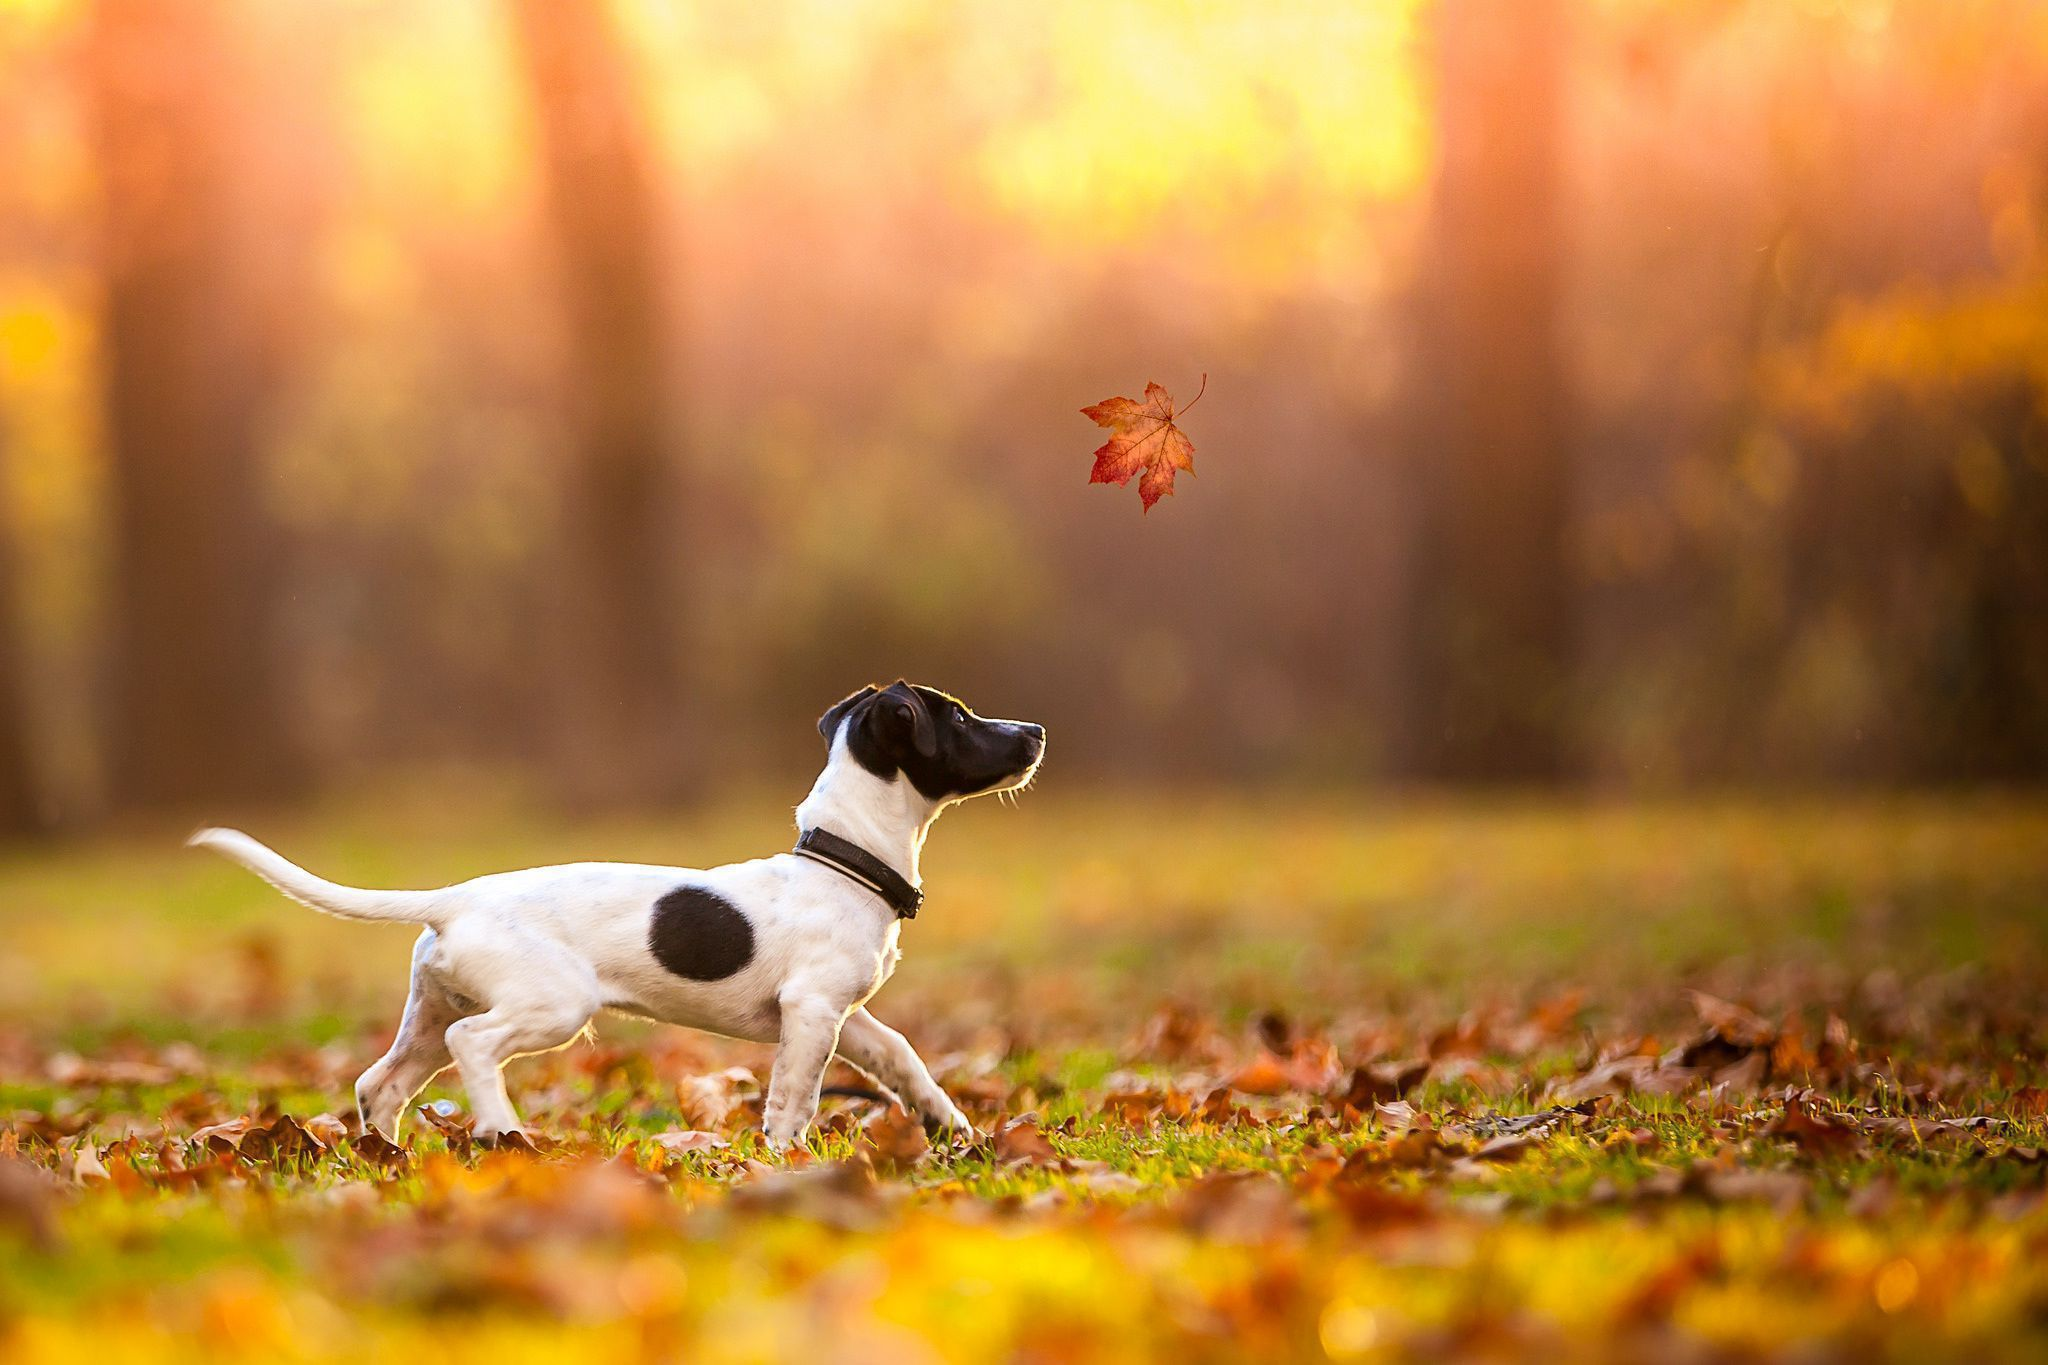 Fall Fox Wallpaper Jack Russell Terrie Wallpapers Backgrounds